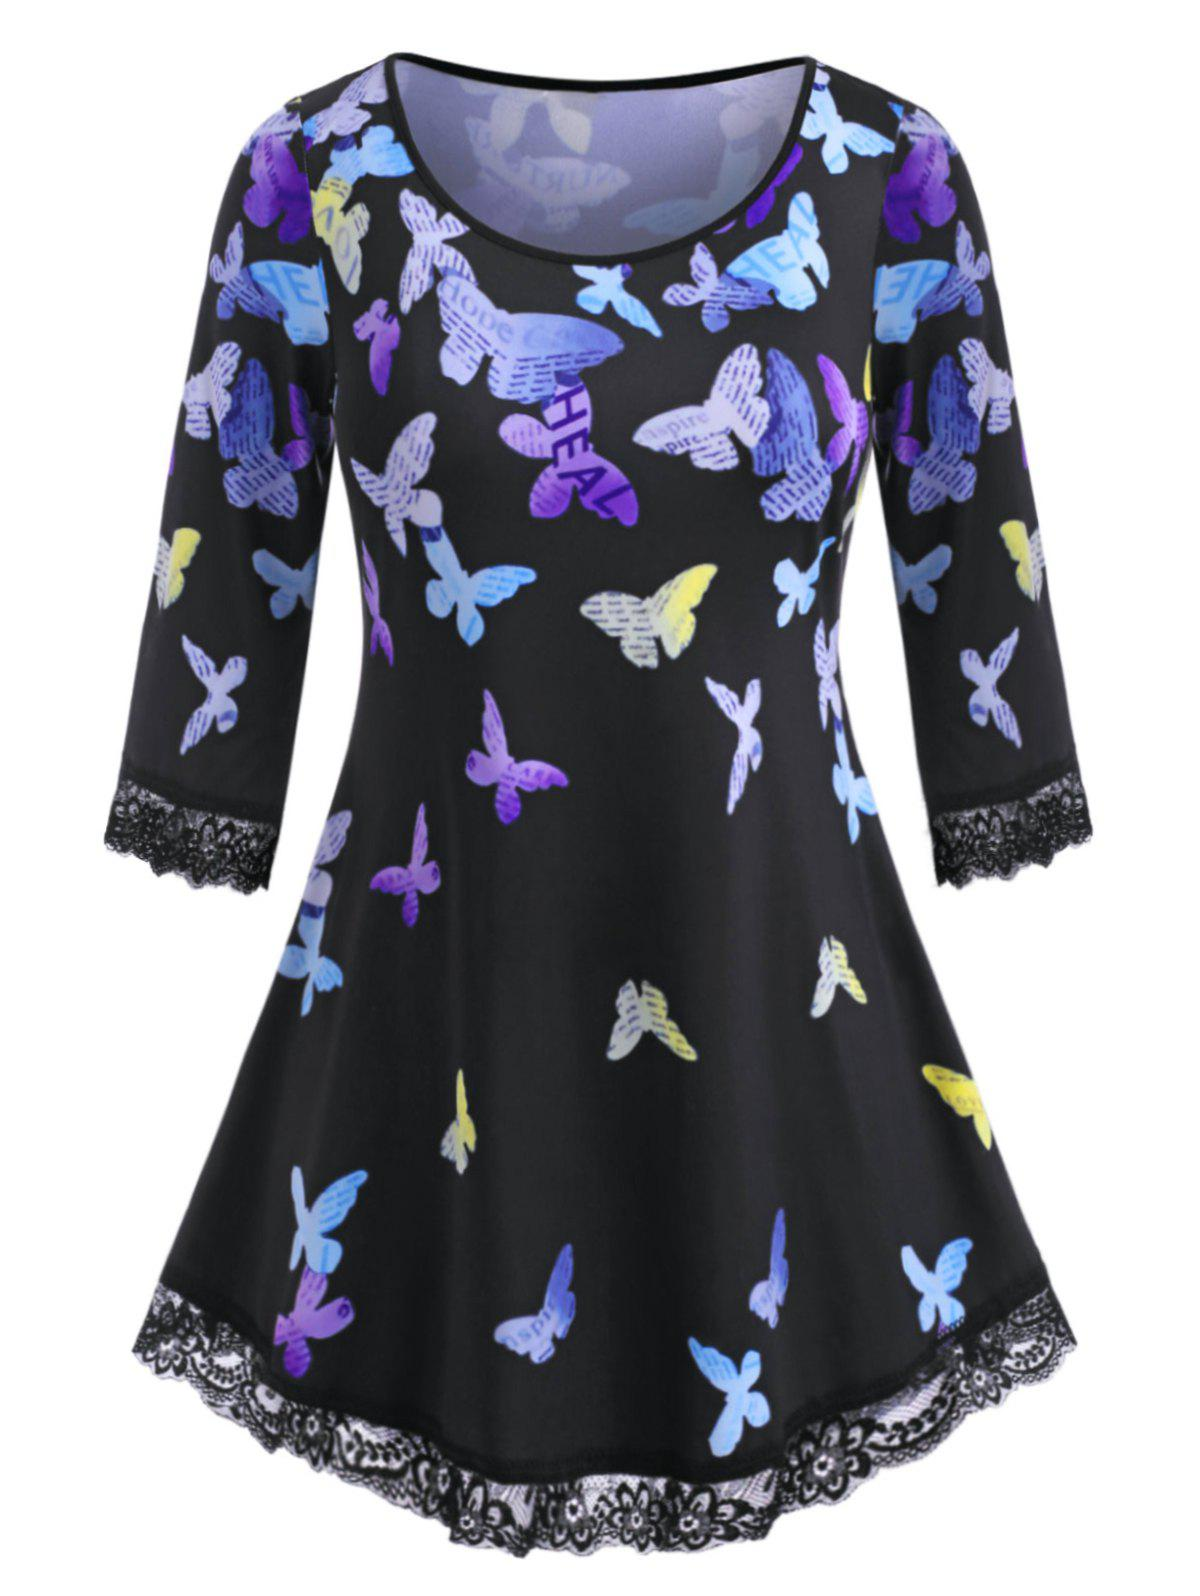 Multicolored Butterfly Scalloped Lace Trim Plus Size Top - BLACK L